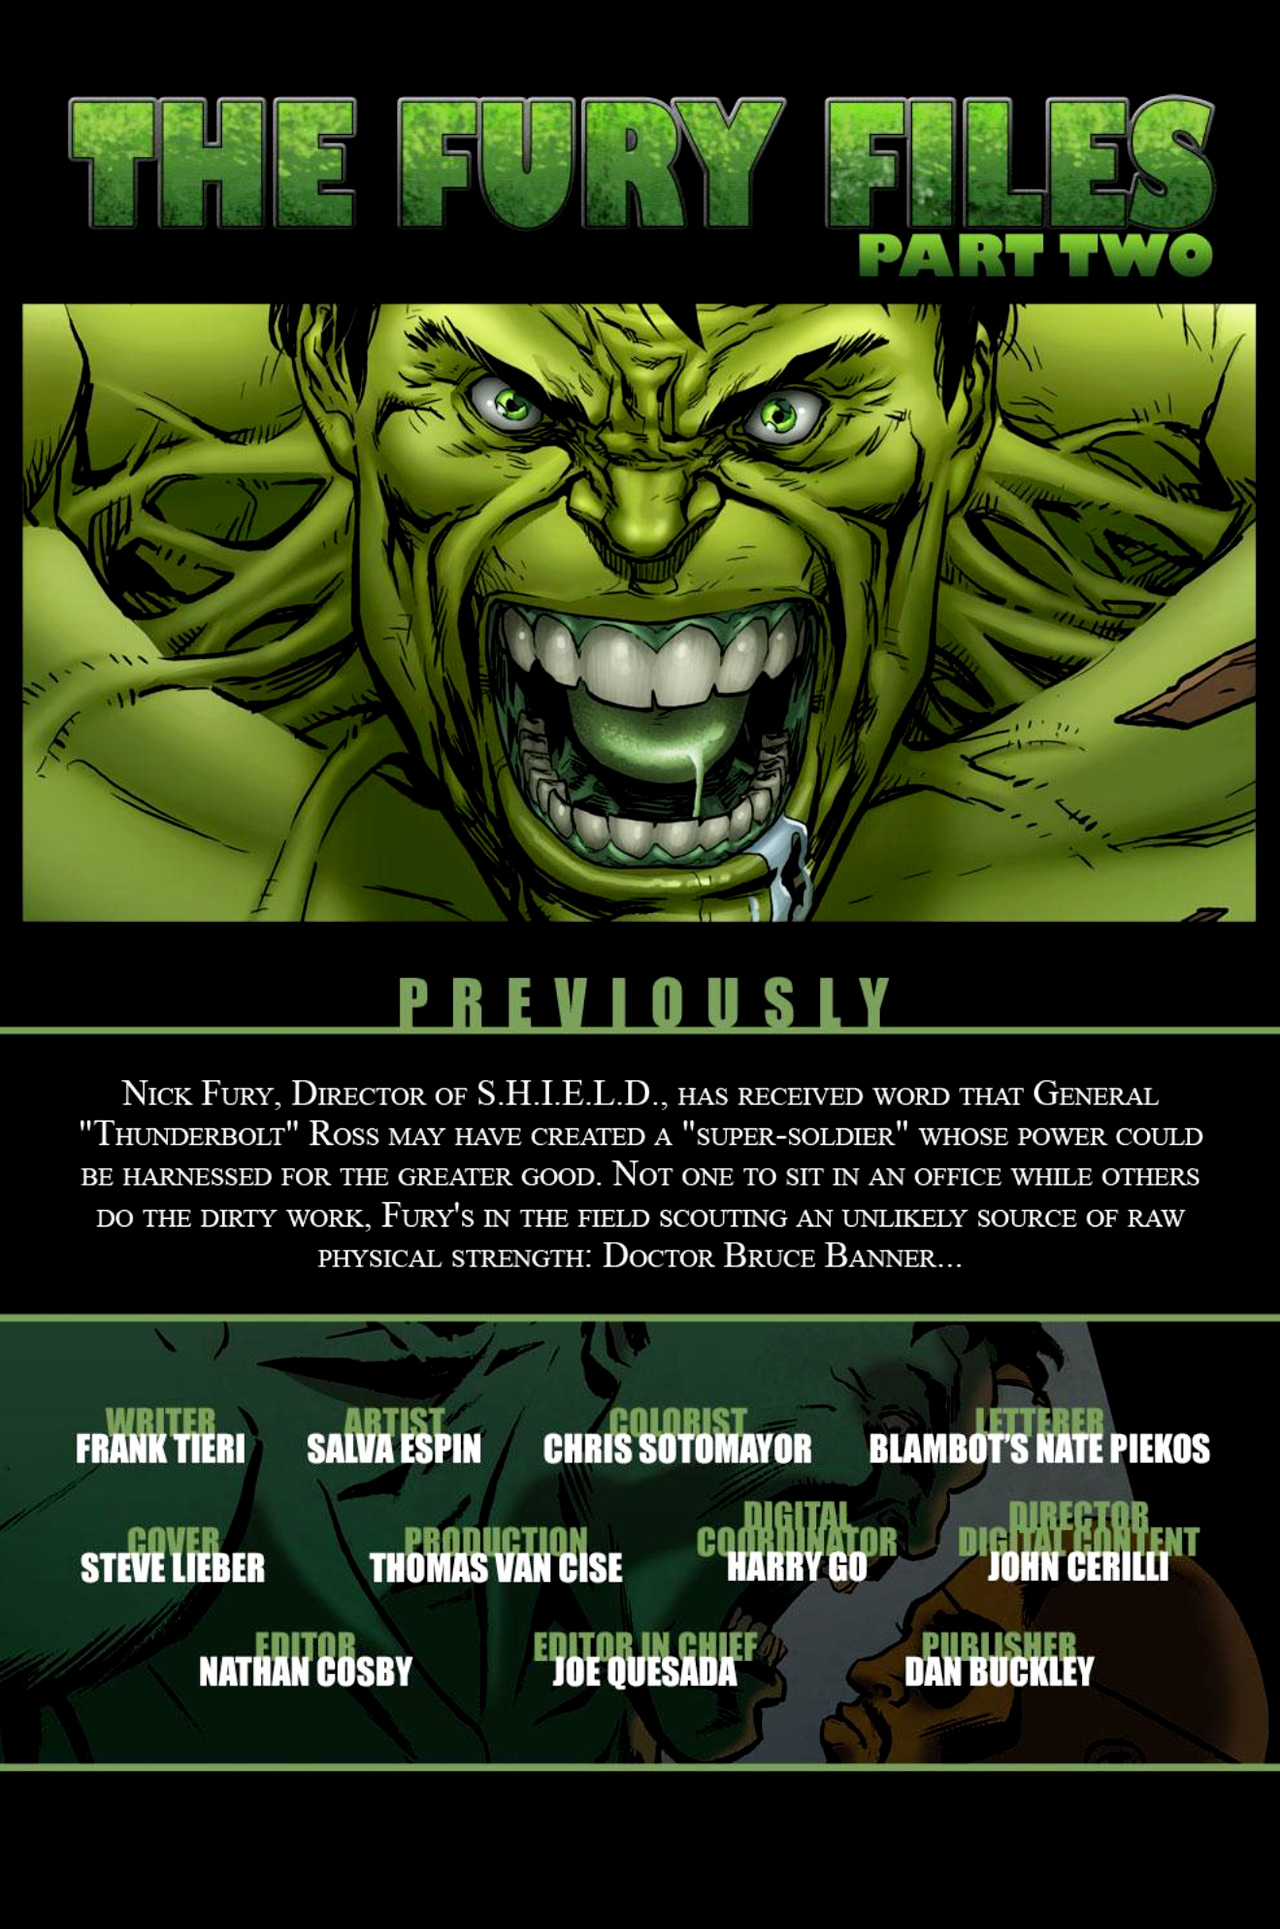 Read online Incredible Hulk: The Fury Files comic -  Issue #2 - 2